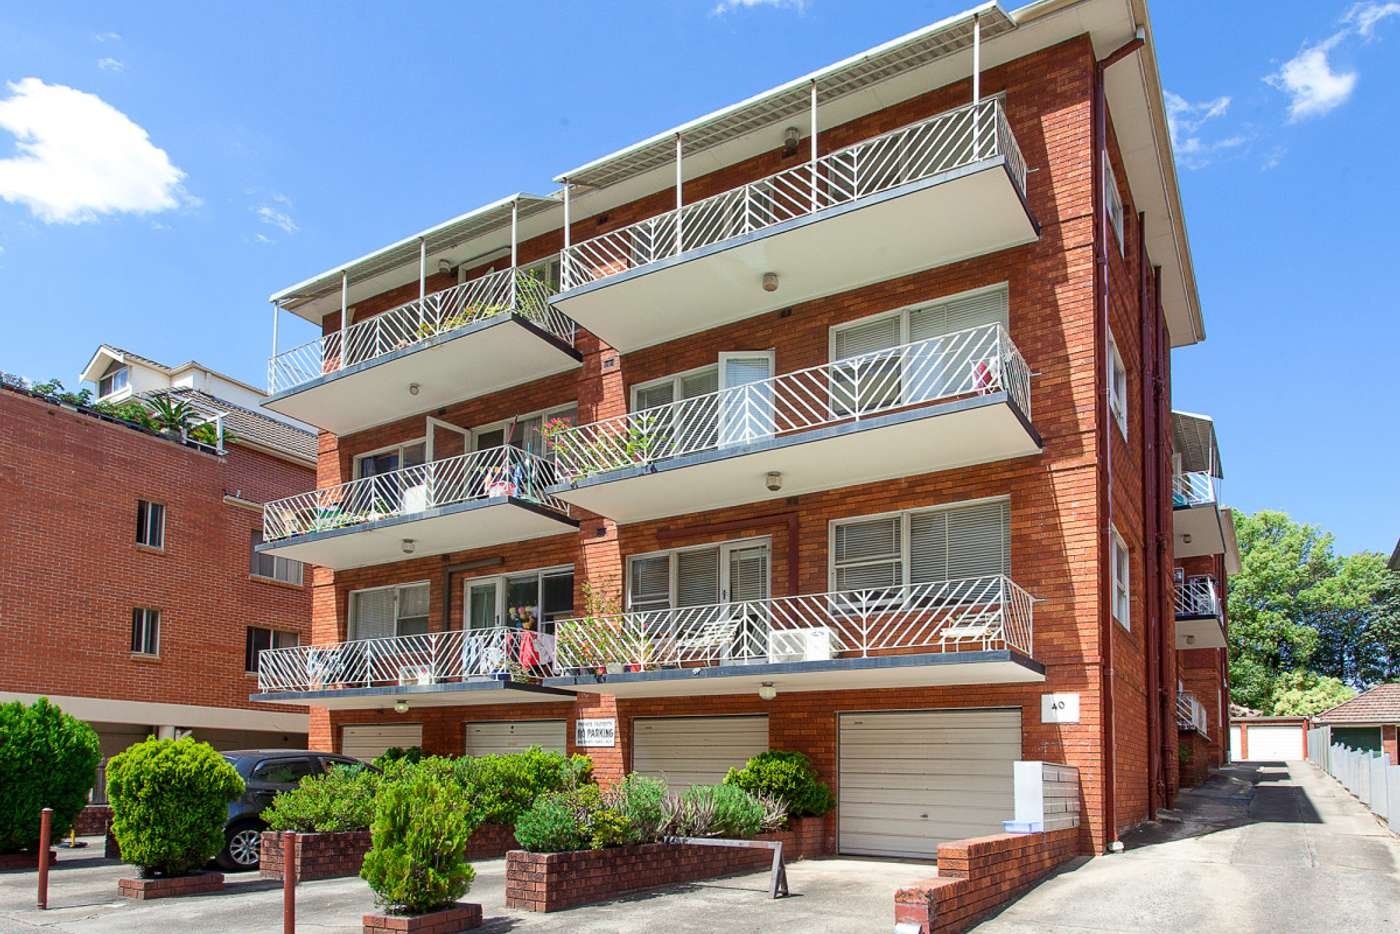 Main view of Homely apartment listing, 17/40 Belmore Street, Burwood NSW 2134